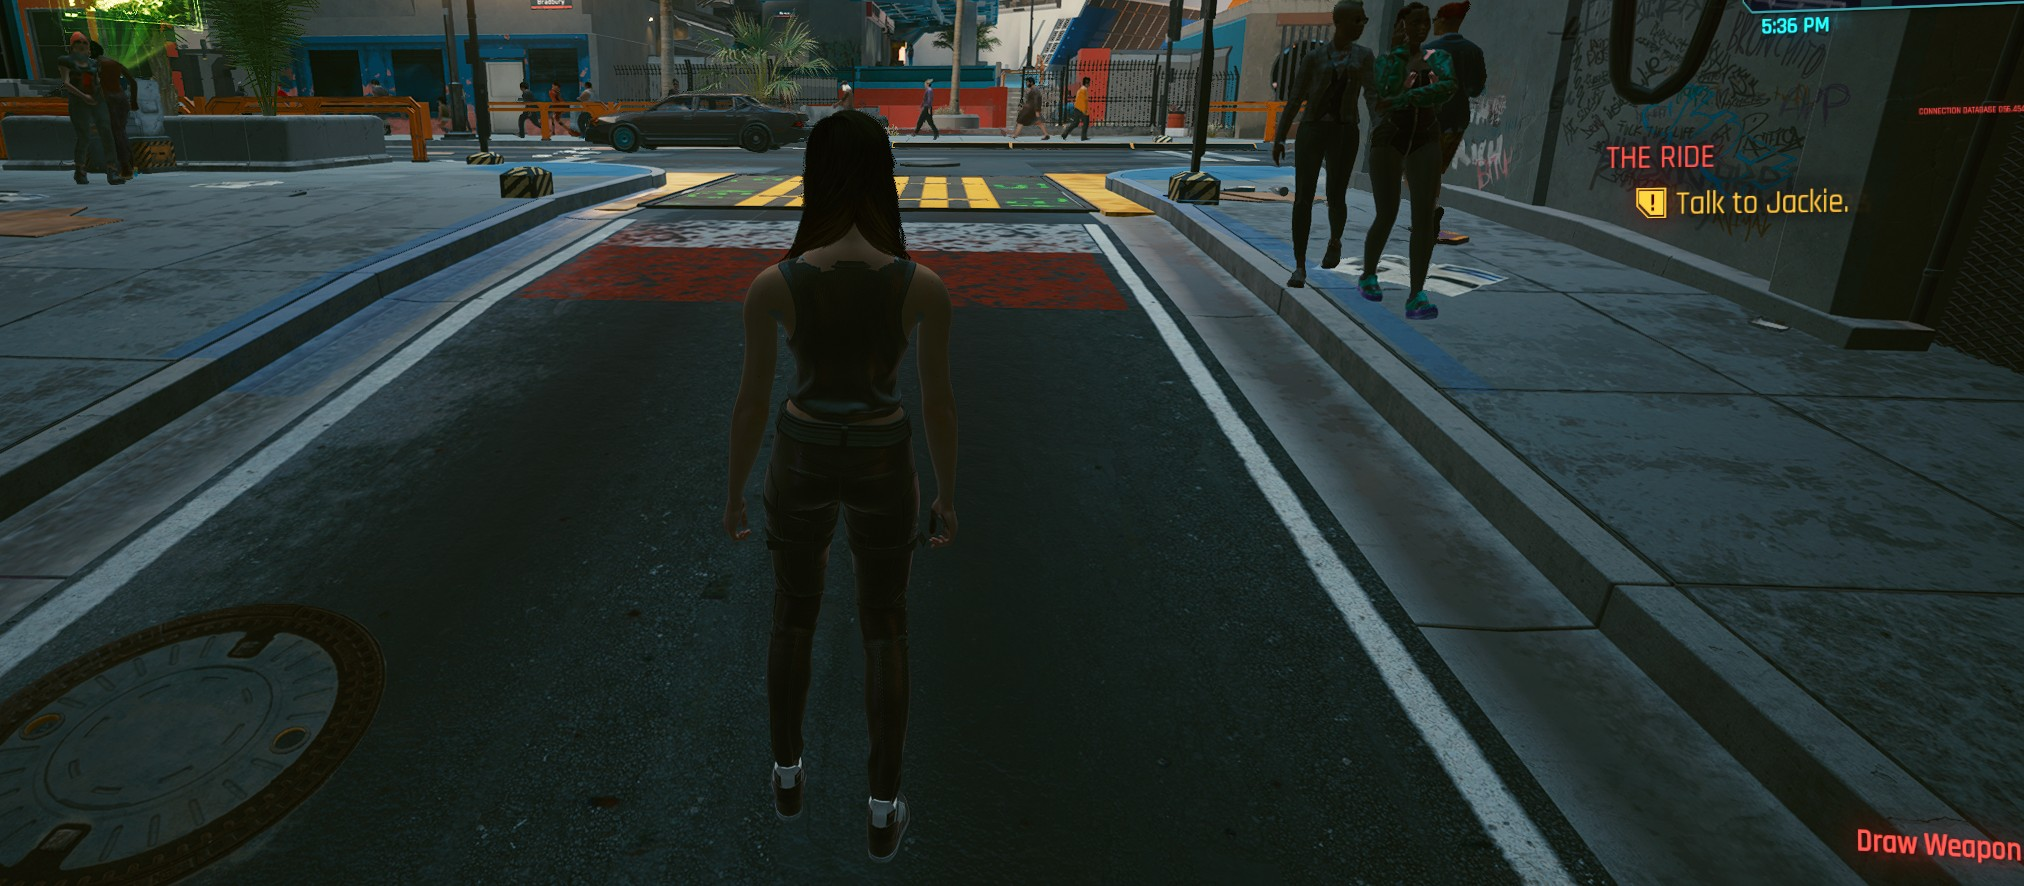 JB - TPP MOD WIP third person. Adds a third person view